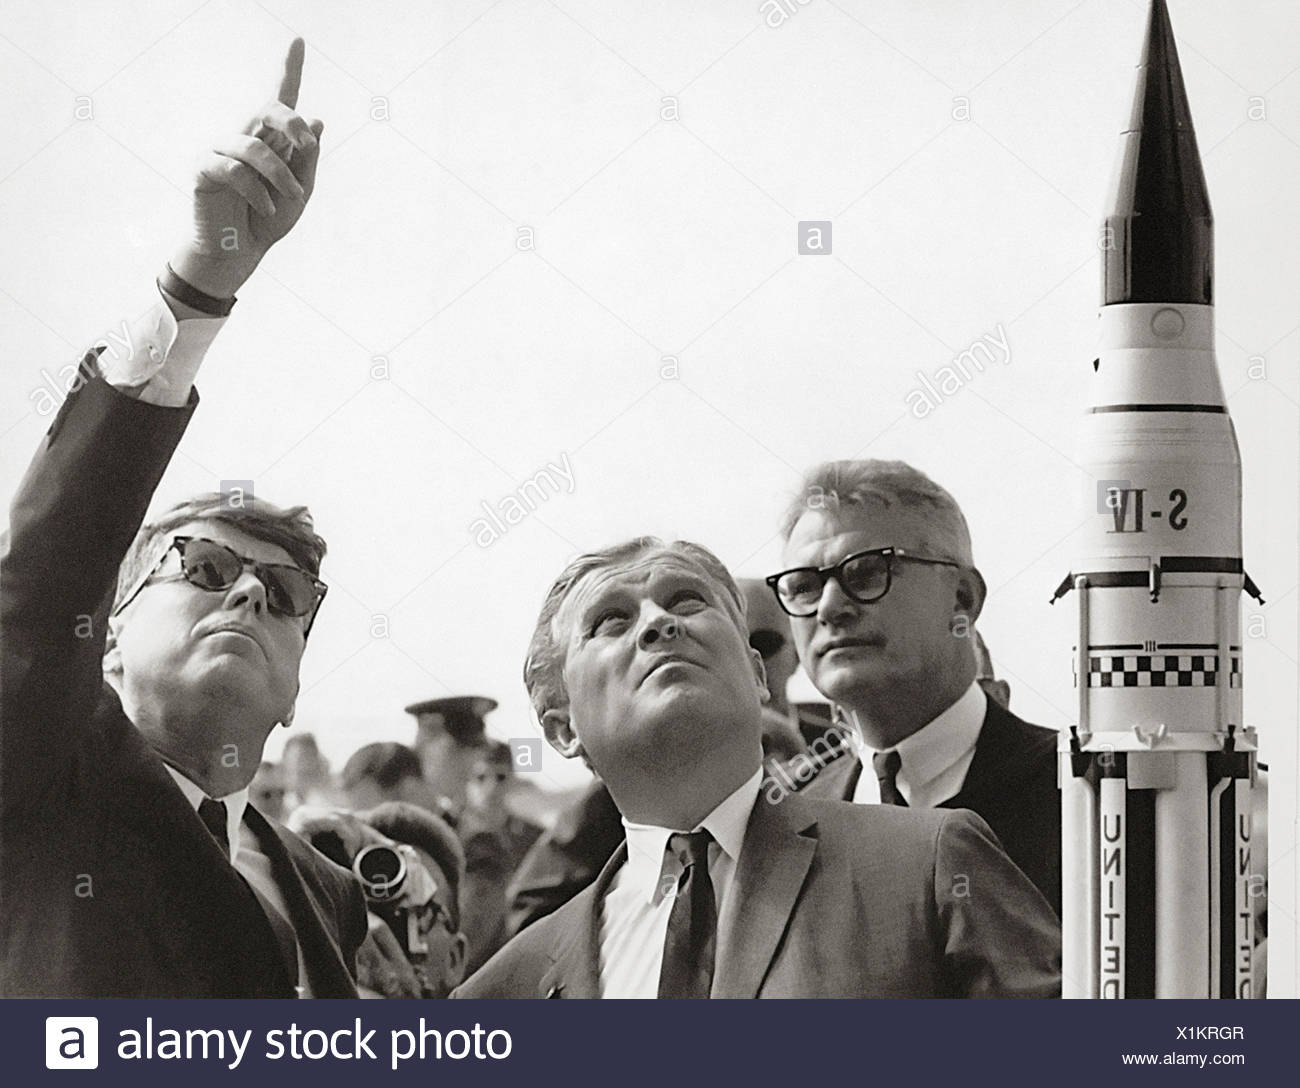 Seamans, von Braun and President Kennedy at Cape Canaveral - Stock Image